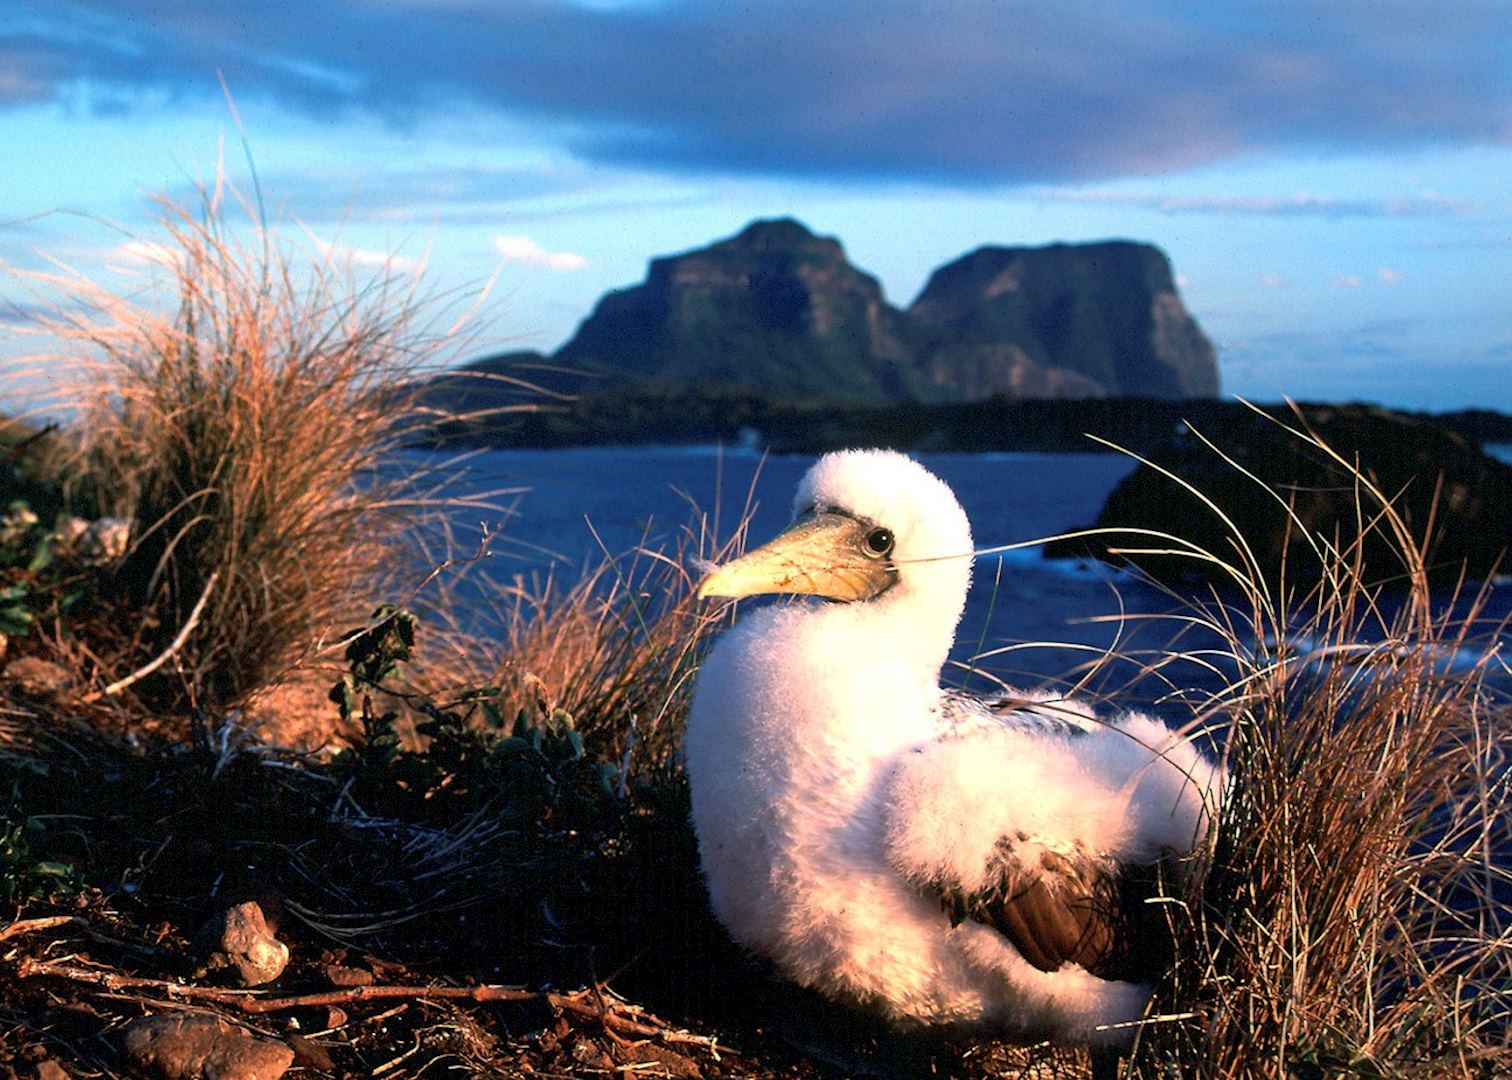 Tom Taior Visit Lord Howe Island On A Trip To Australia | Audley Travel